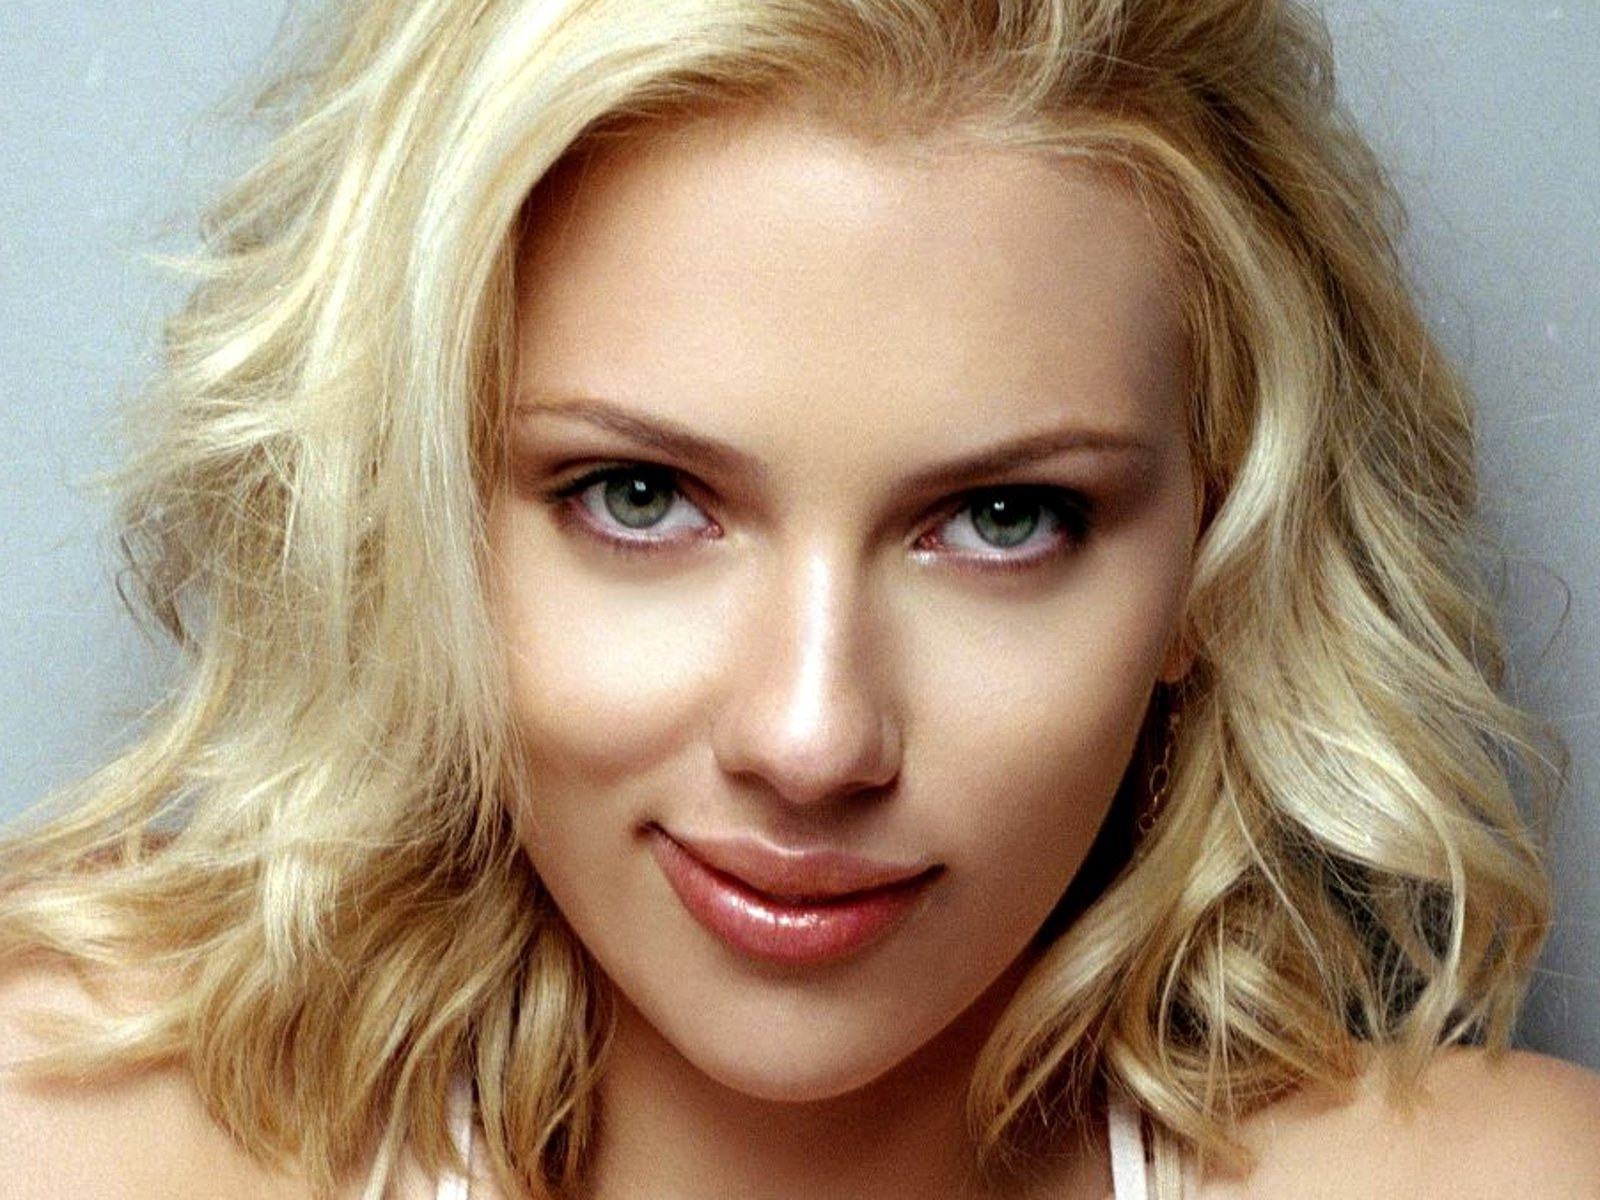 wonderful scarlett johansson beauty face look free background hd desktop pictures